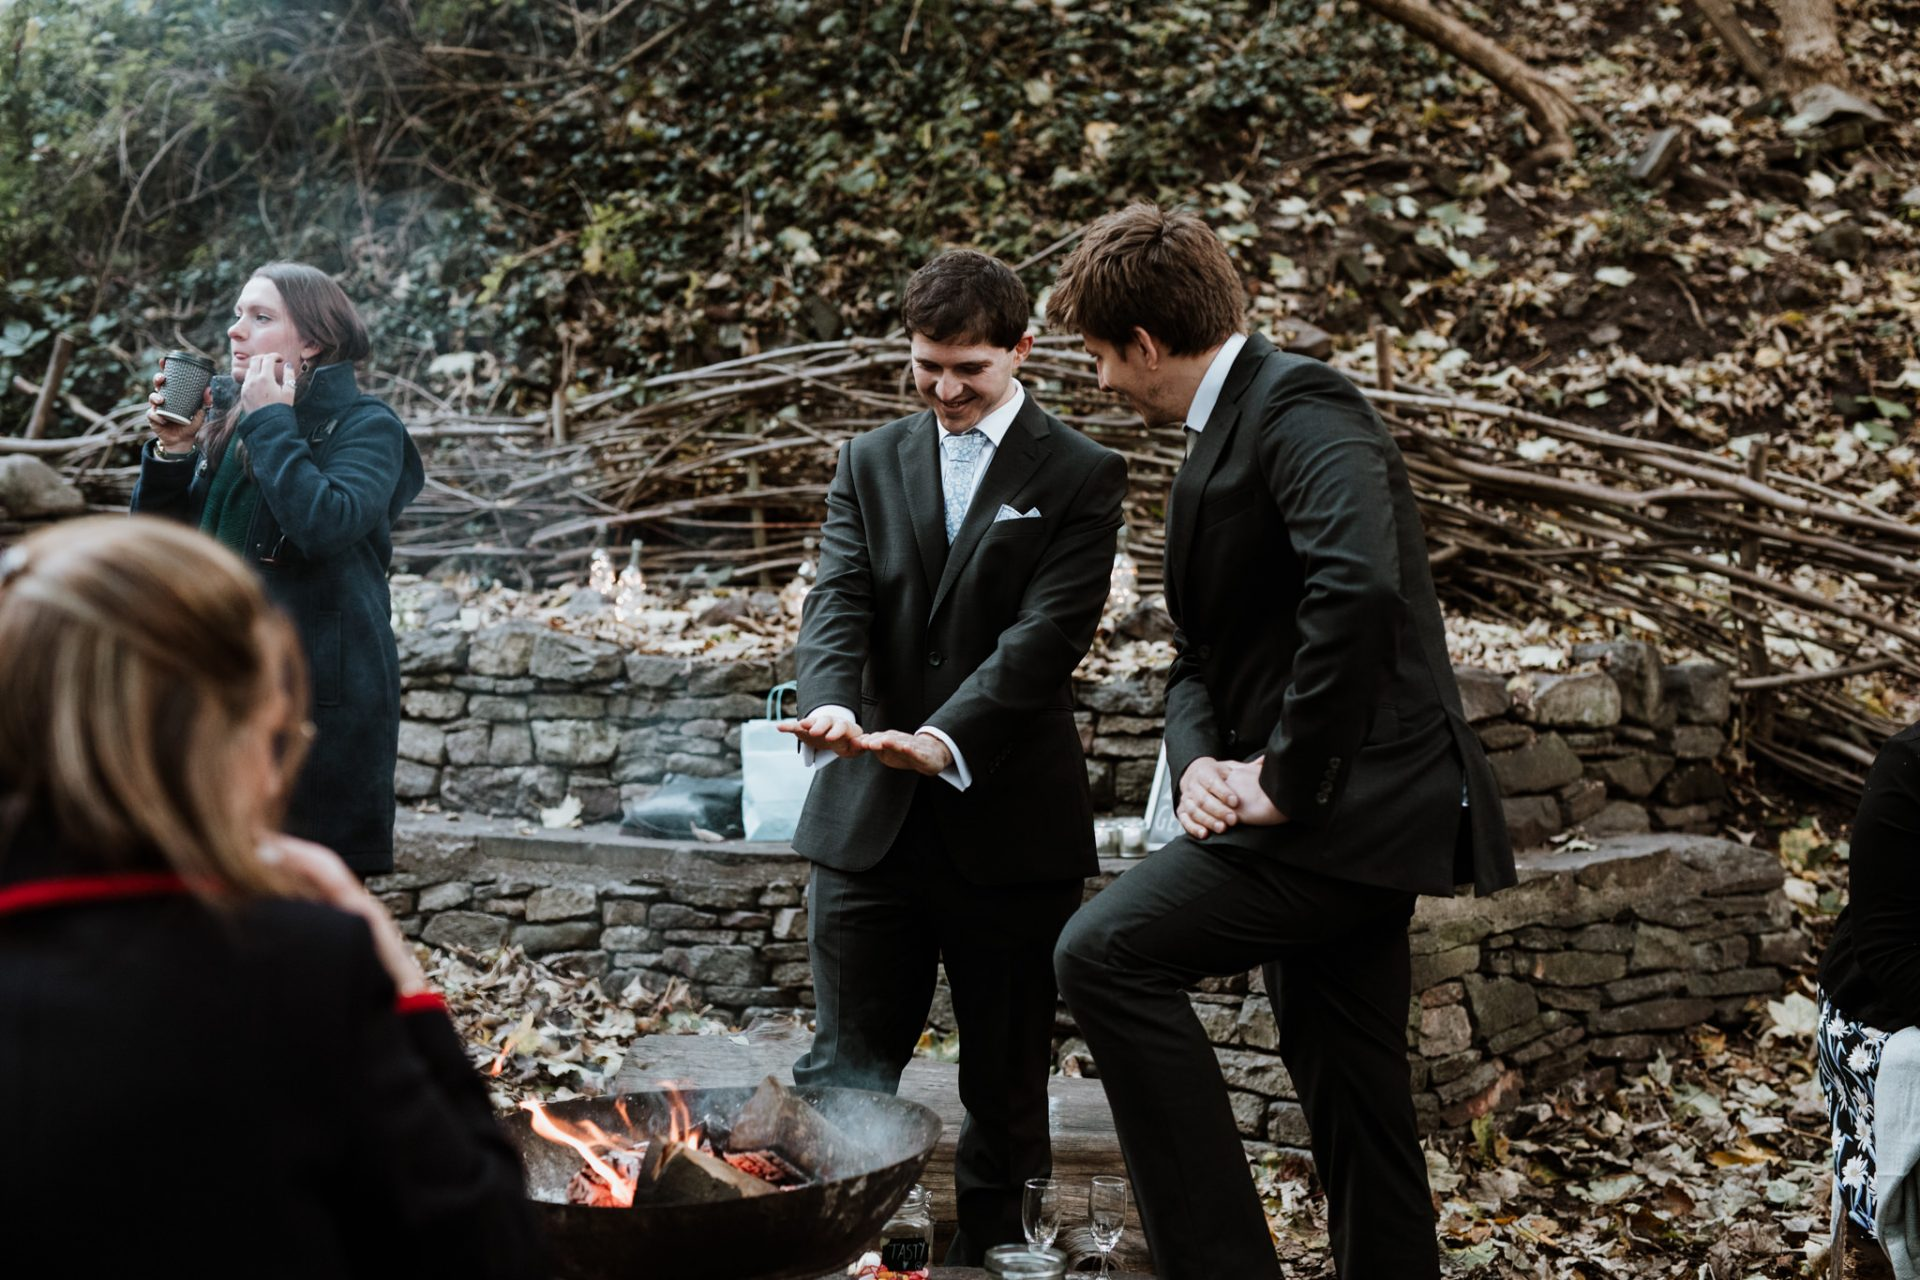 wedding guests warming hands fire pit candid wedding photography